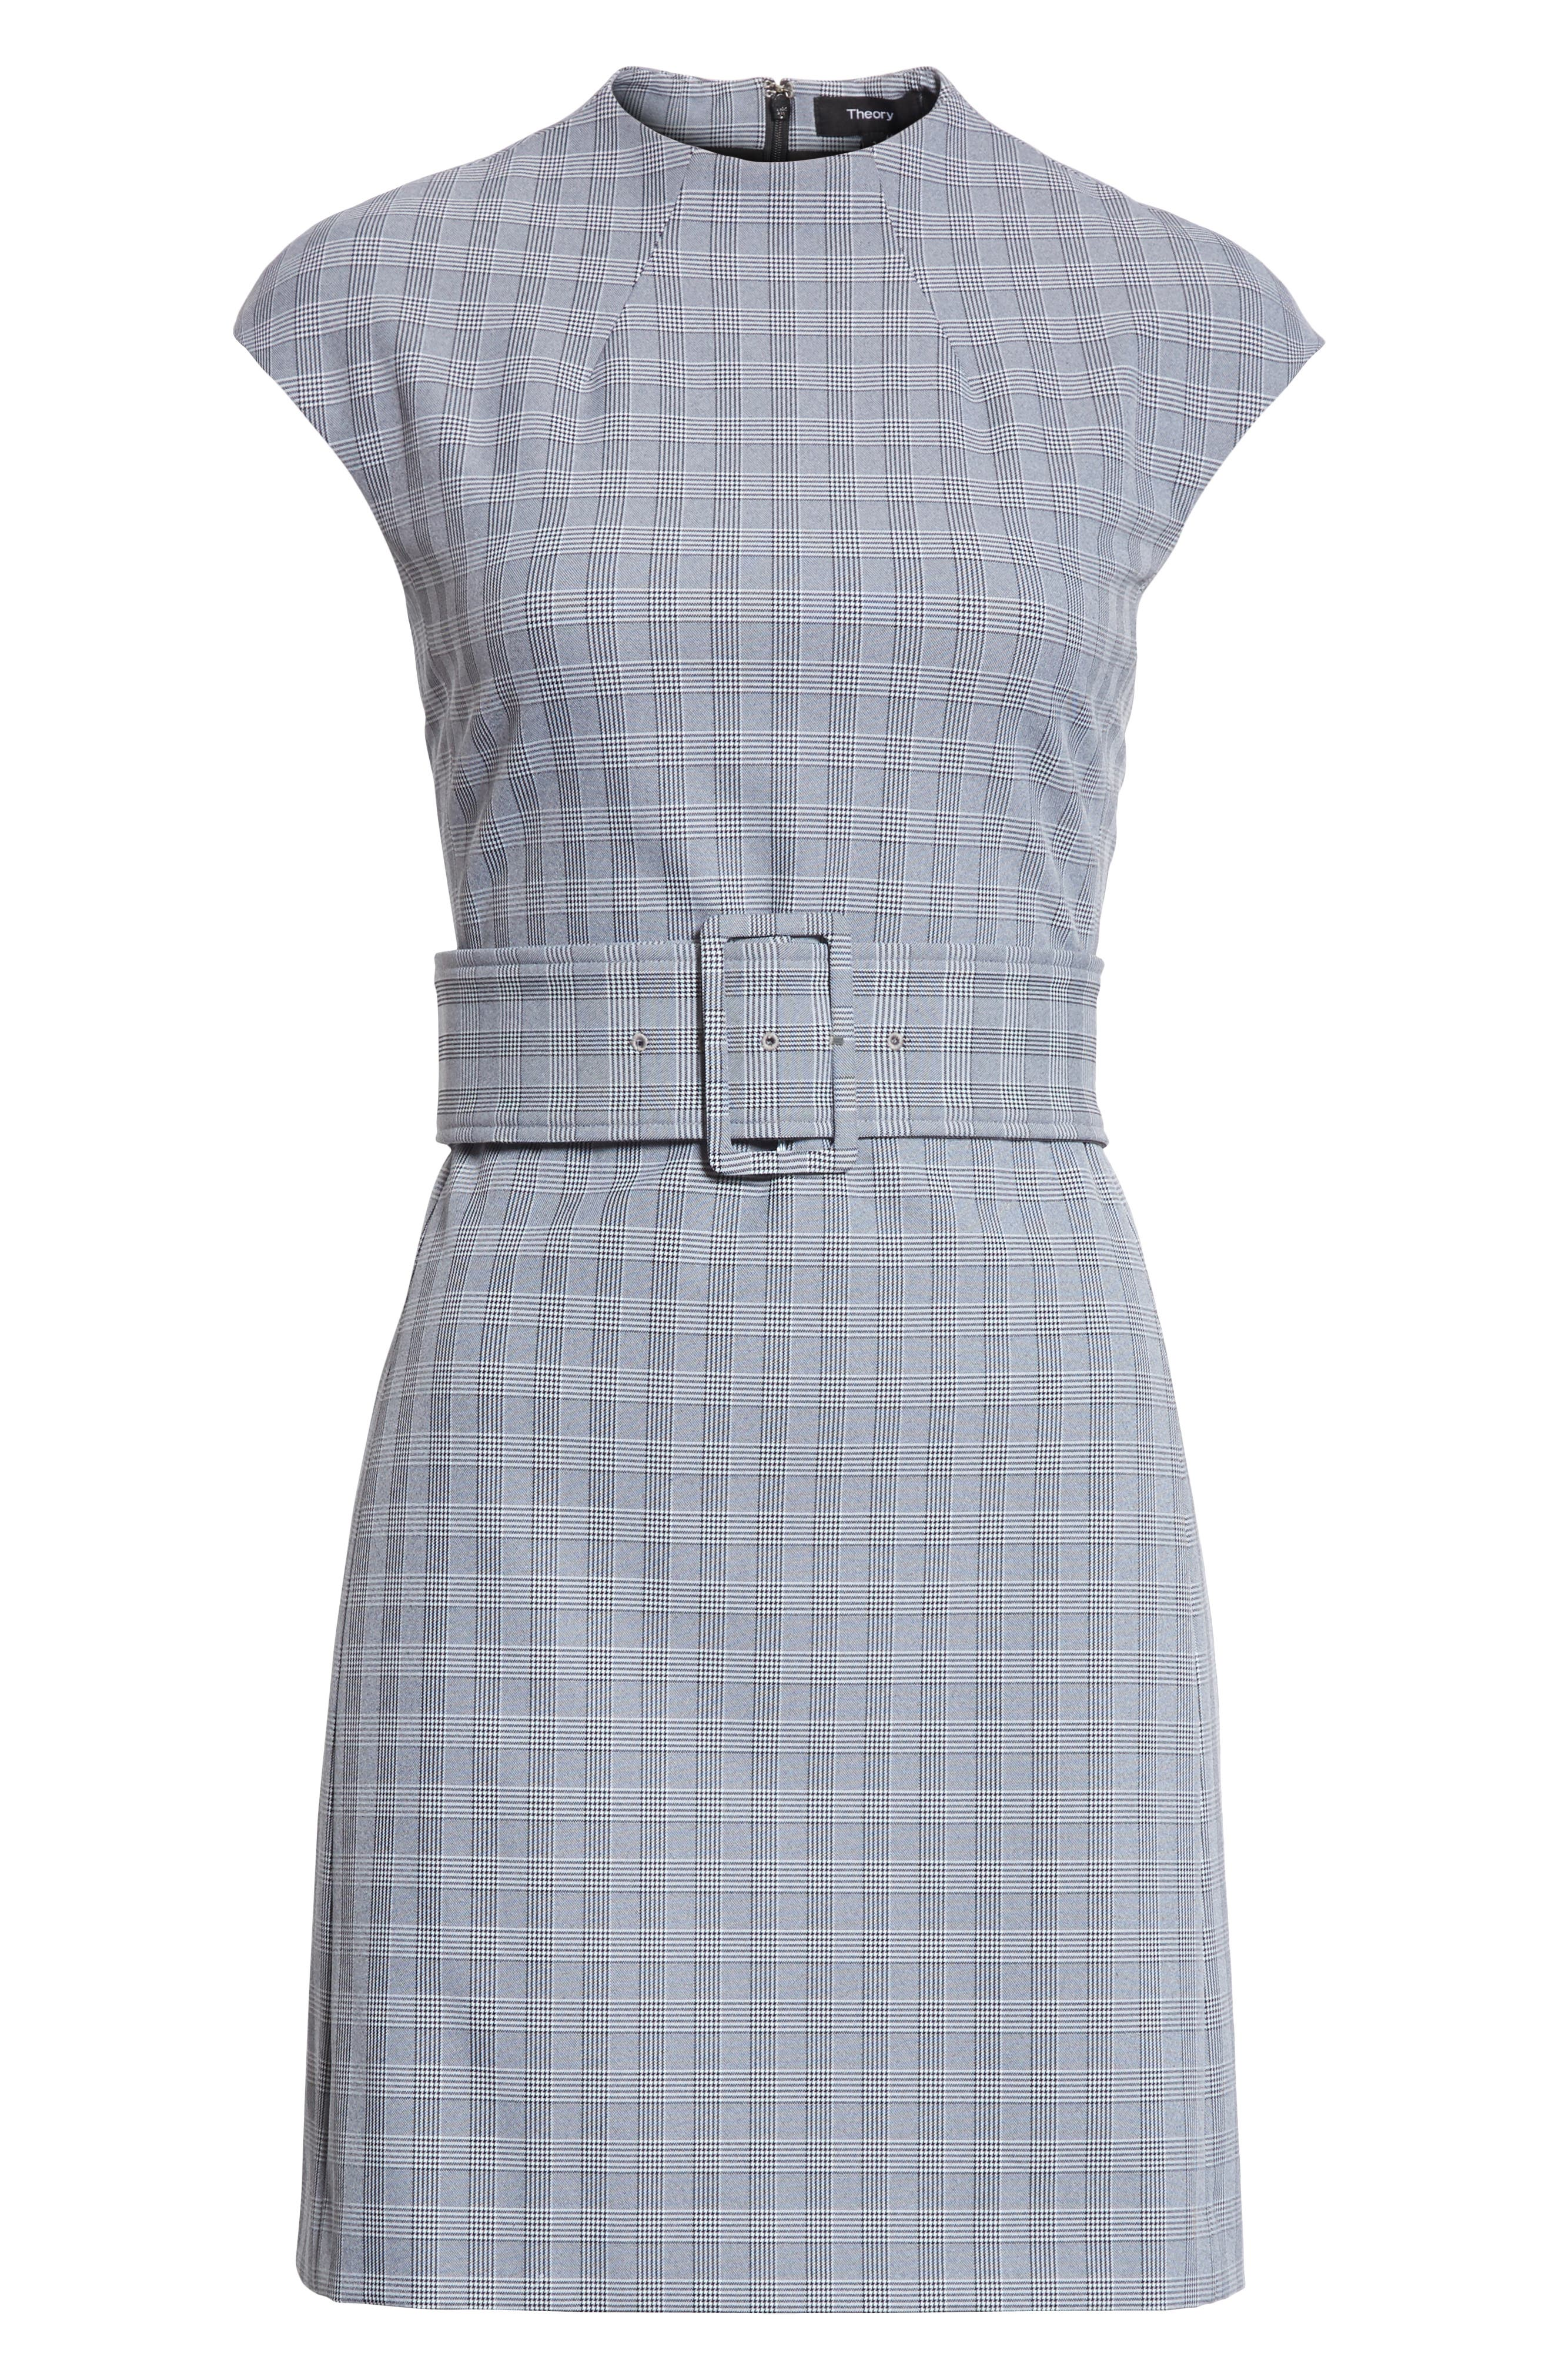 McClair Plaid Mod Belted Sheath Dress,                             Alternate thumbnail 7, color,                             009